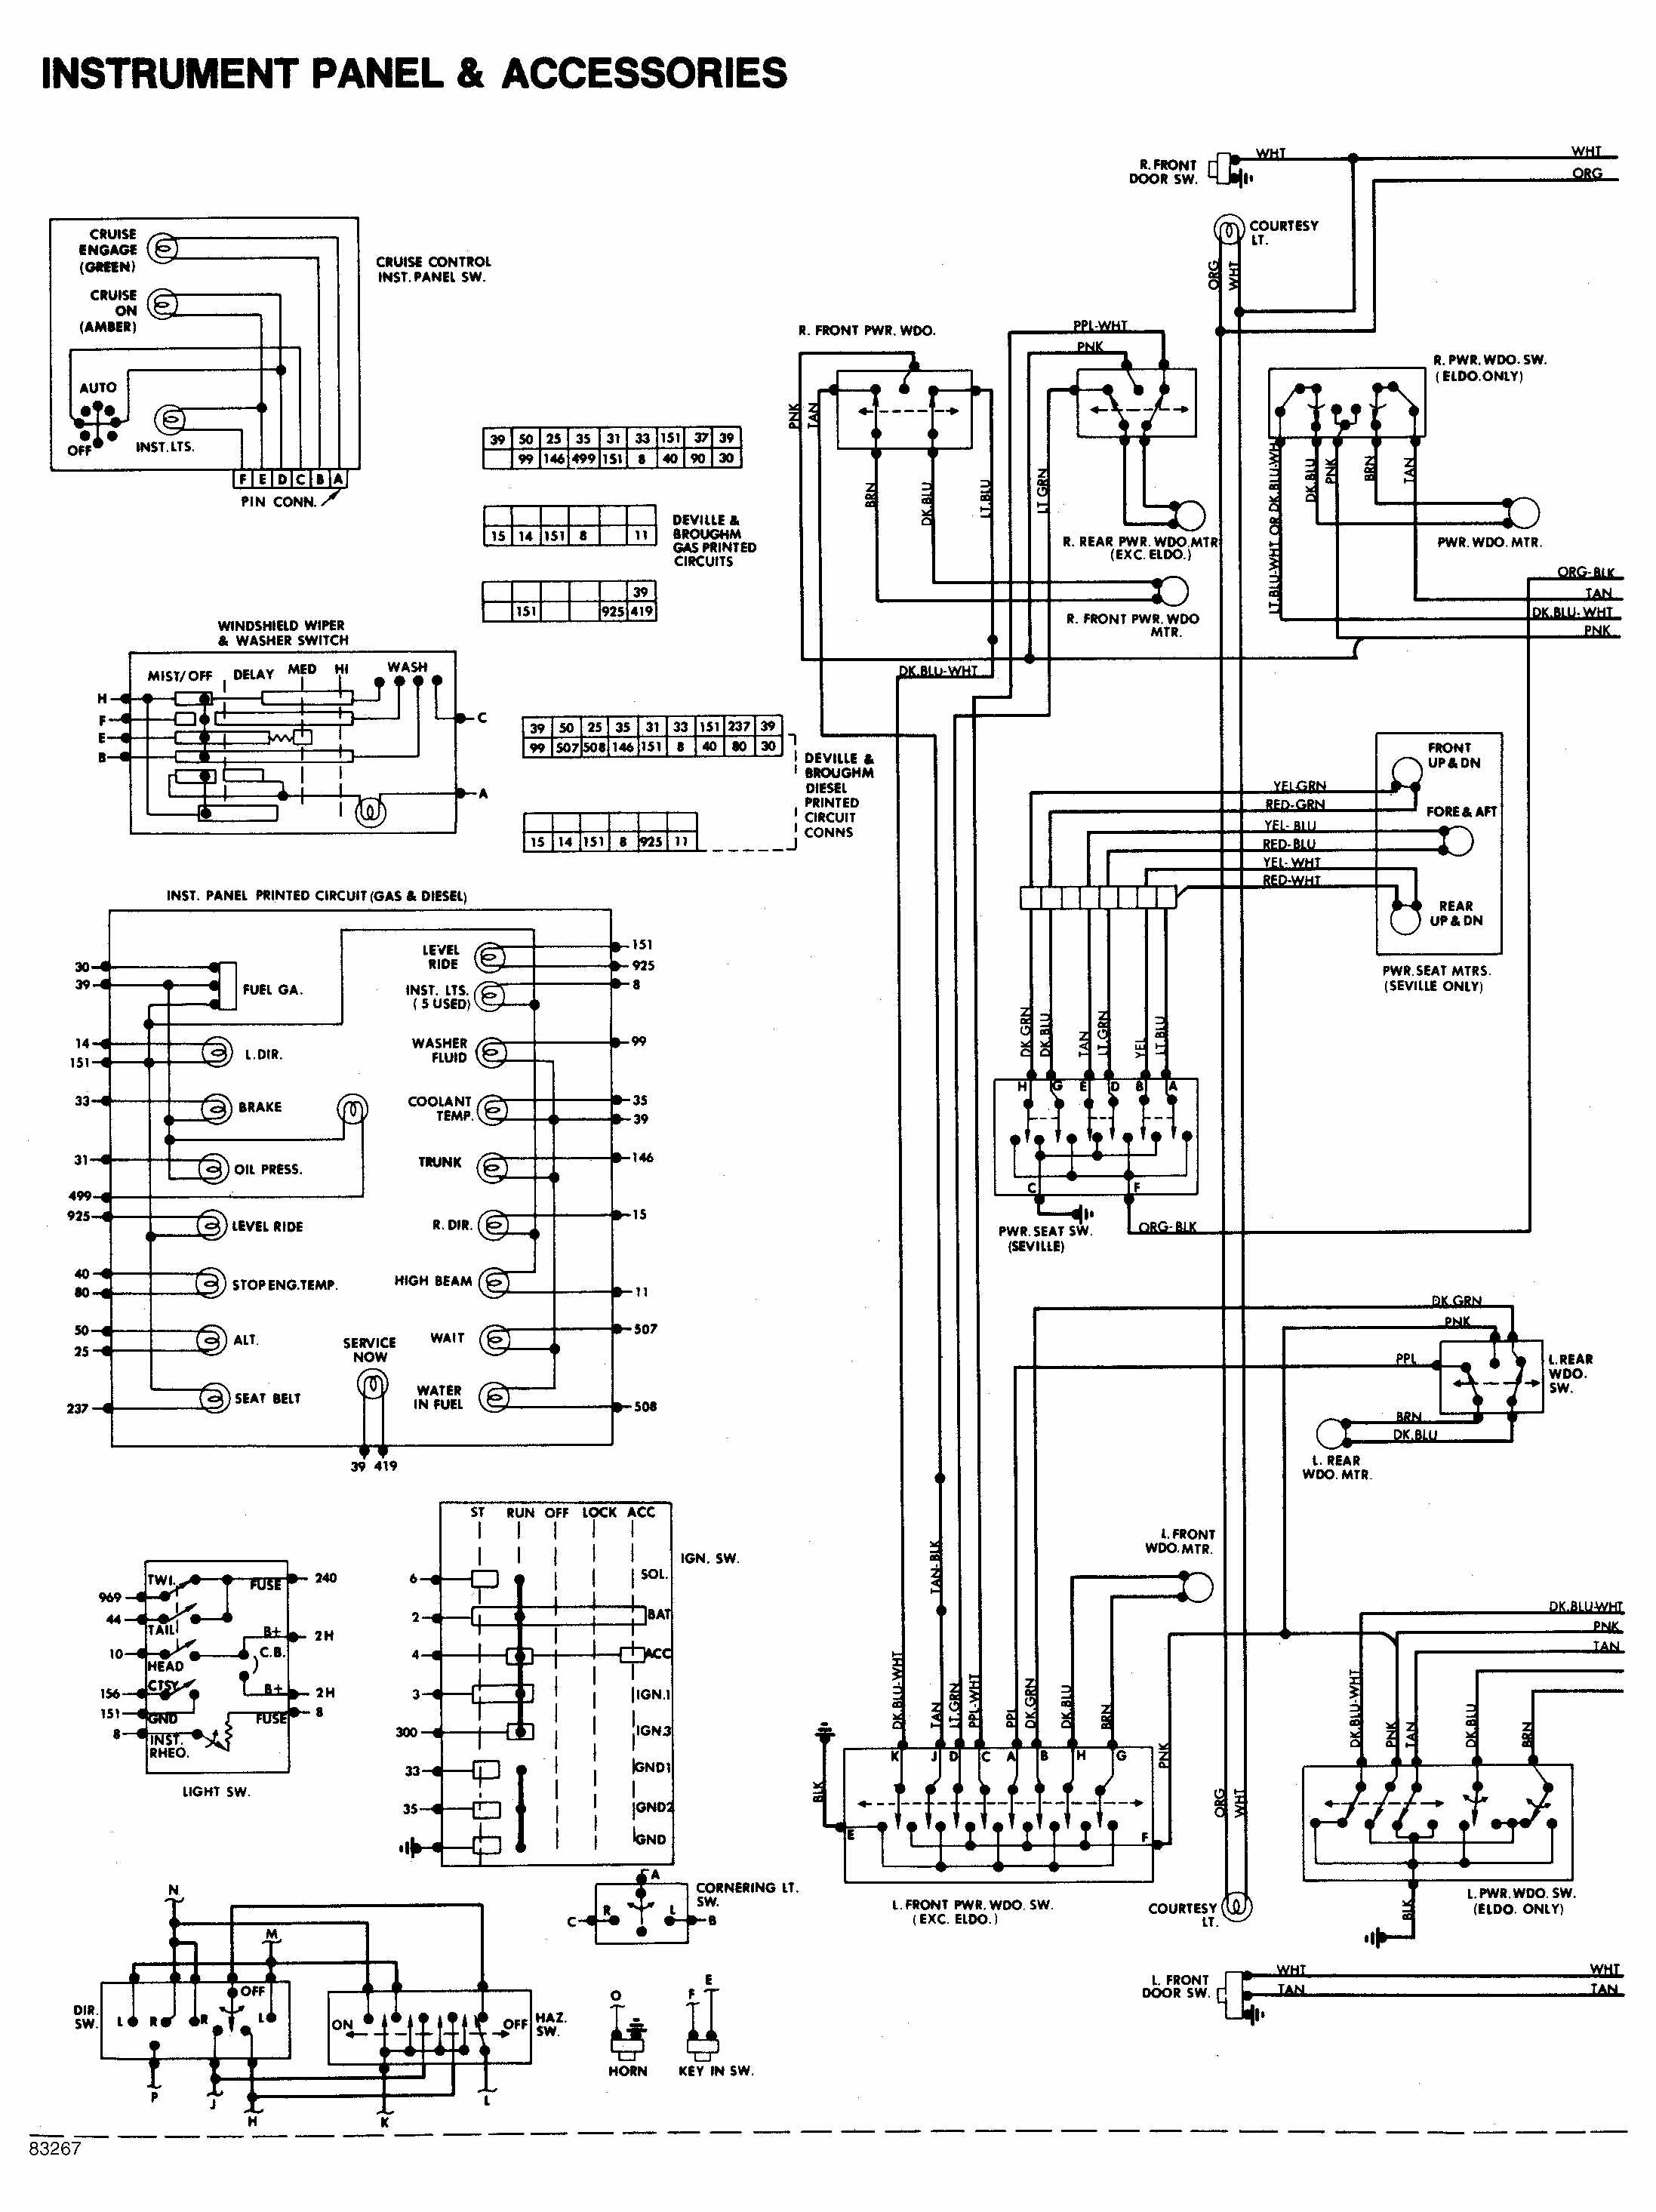 1994 Jetta Wiring Diagram Diagrams 2004 94 Corvette List Of Schematic Circuit U2022 Rh Olivetreedesigns Co 2003